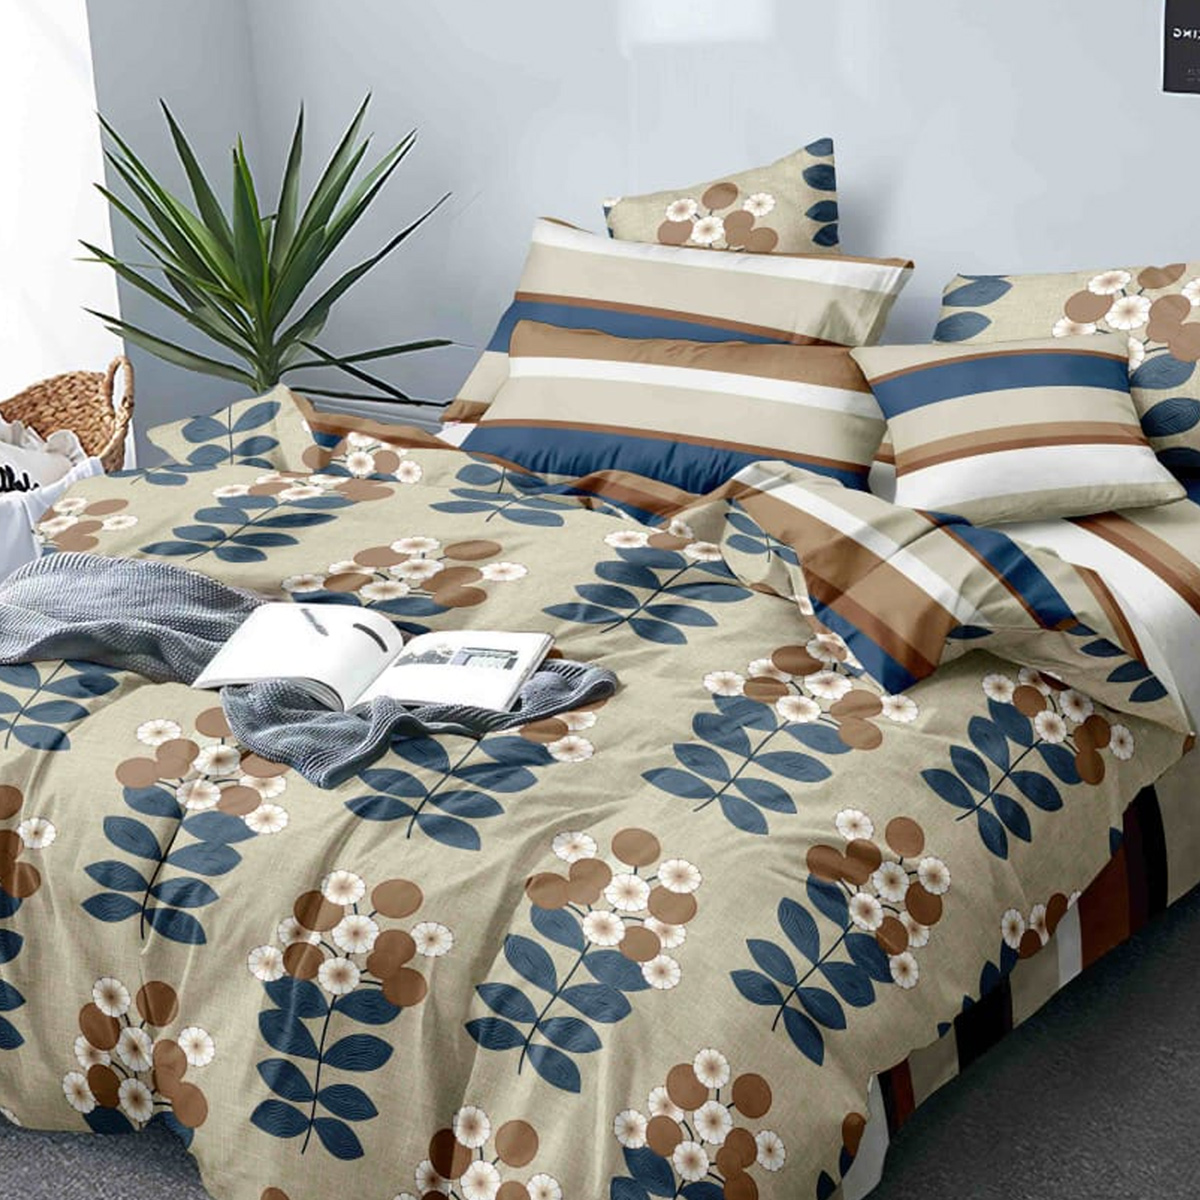 Appealing Brown Colored Printed Queen Sized Bed Sheet With 2 Pillow Covers